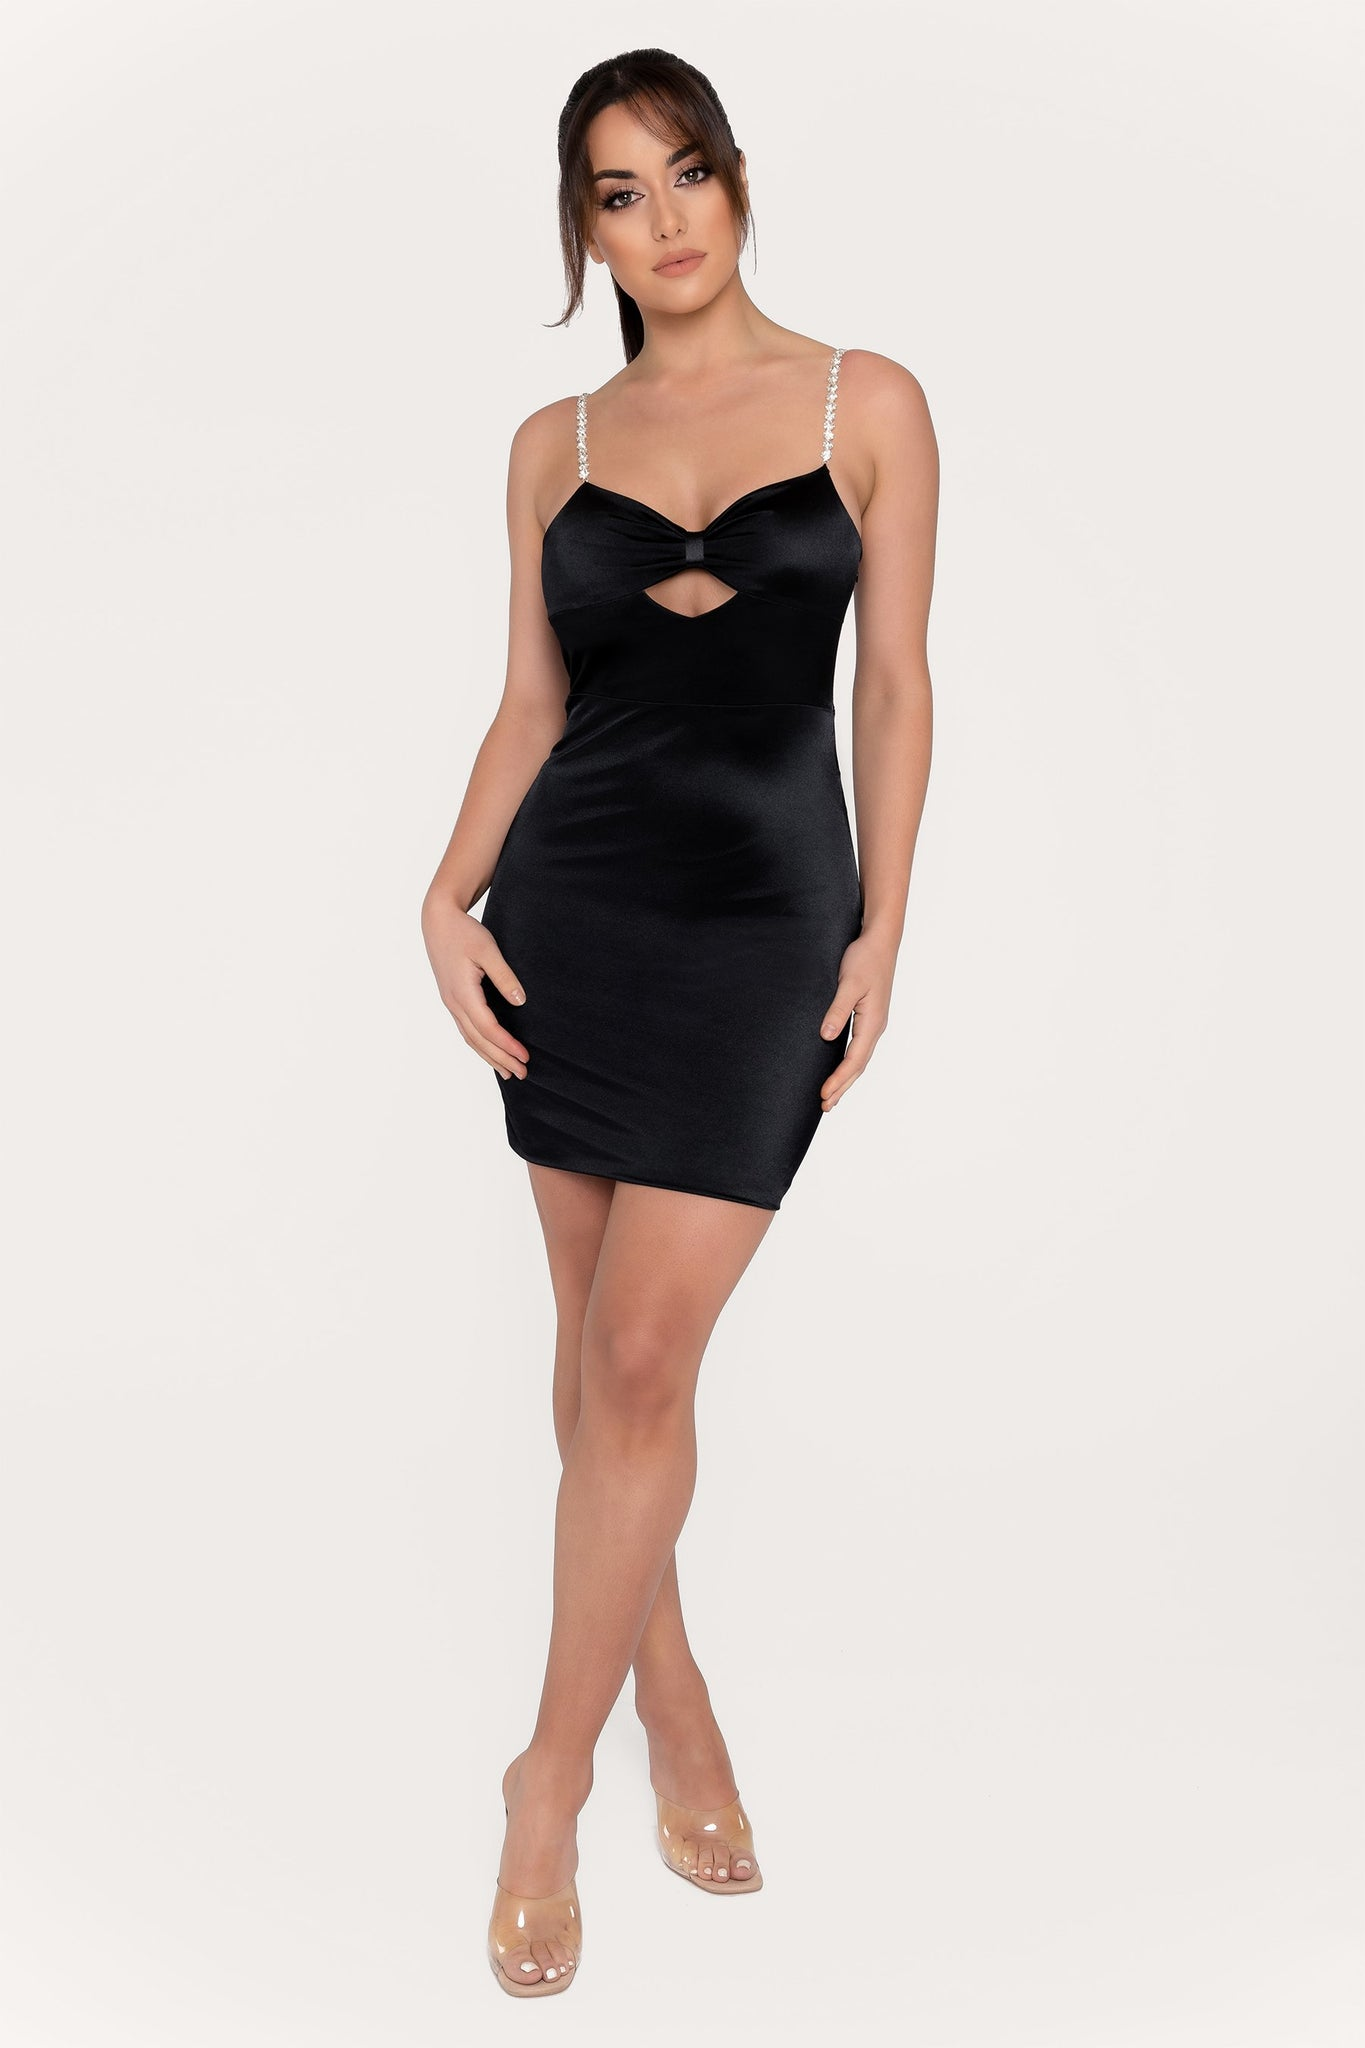 Arianna Diamante Strap Cut Out Mini Dress - Black - MESHKI